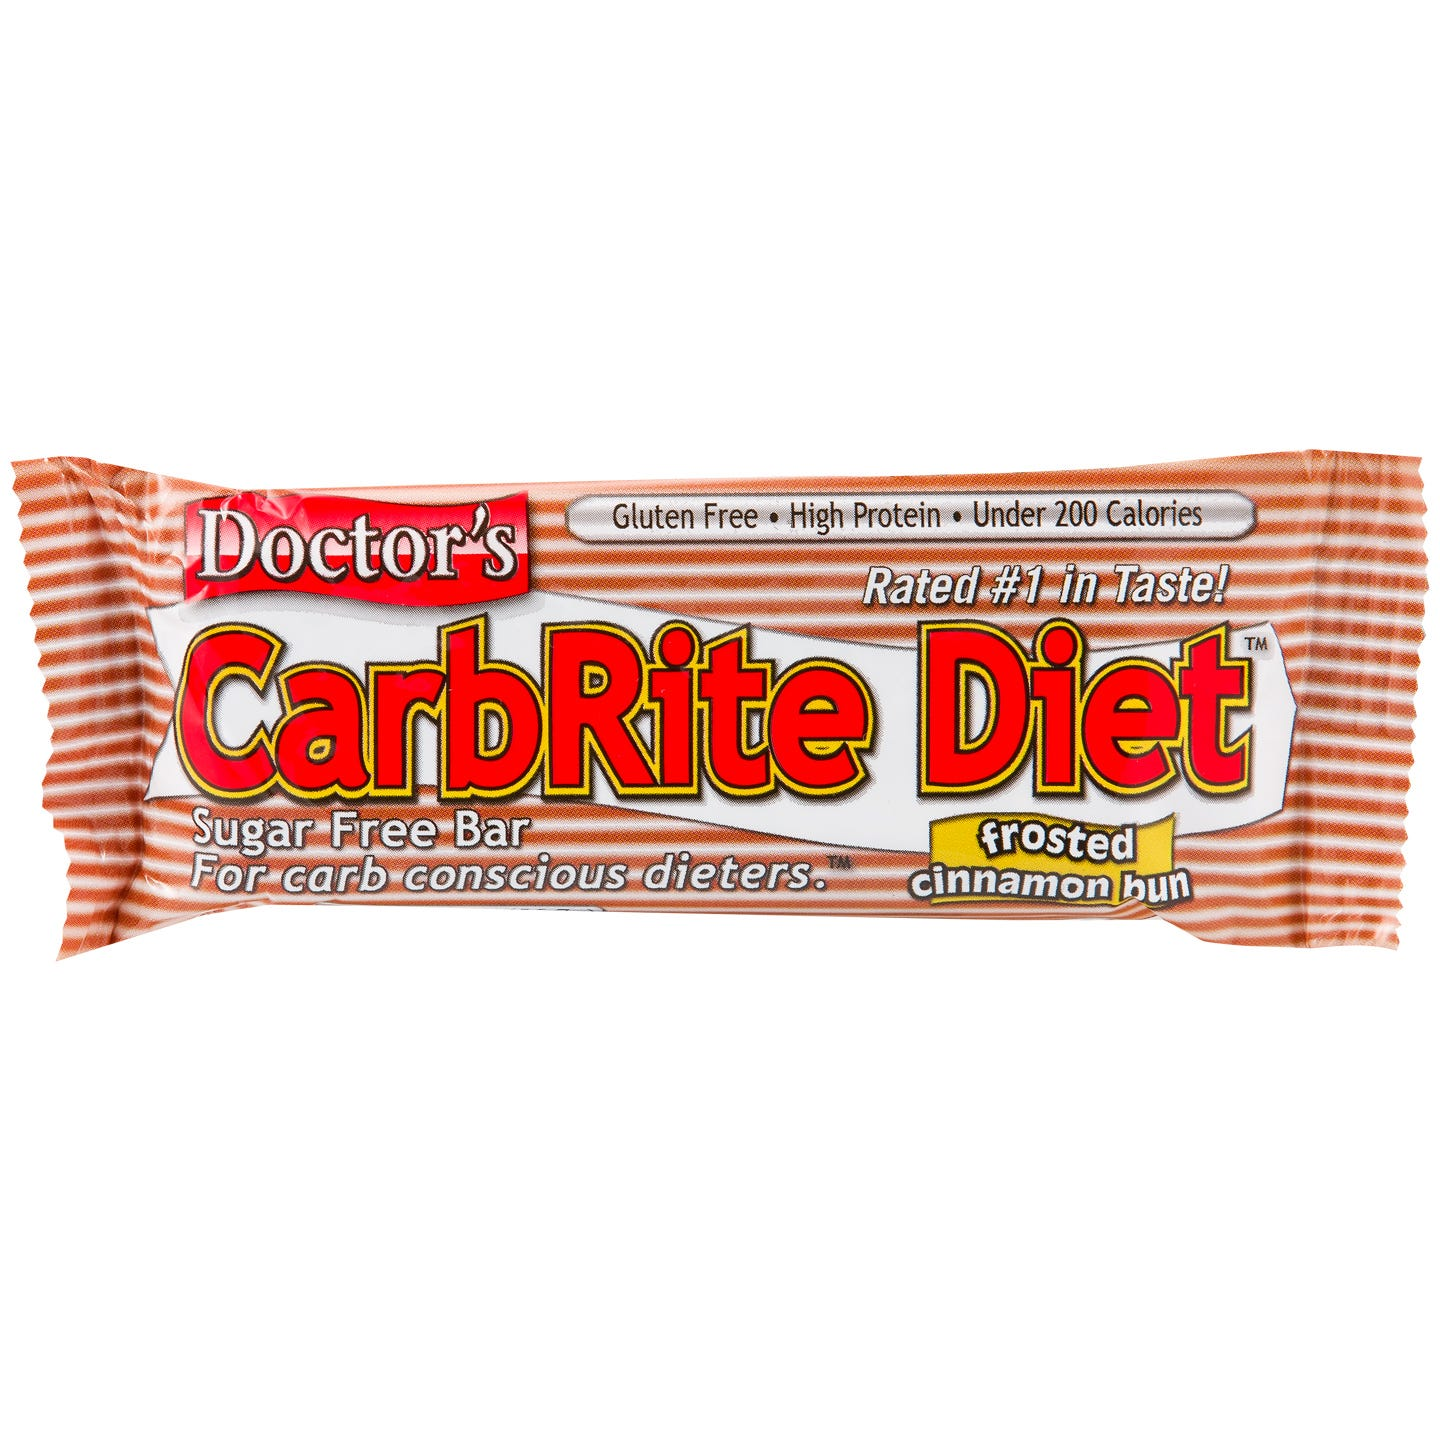 Doctor's CarbRite Diet Protein Bars - Frosted Cinnamon Bun